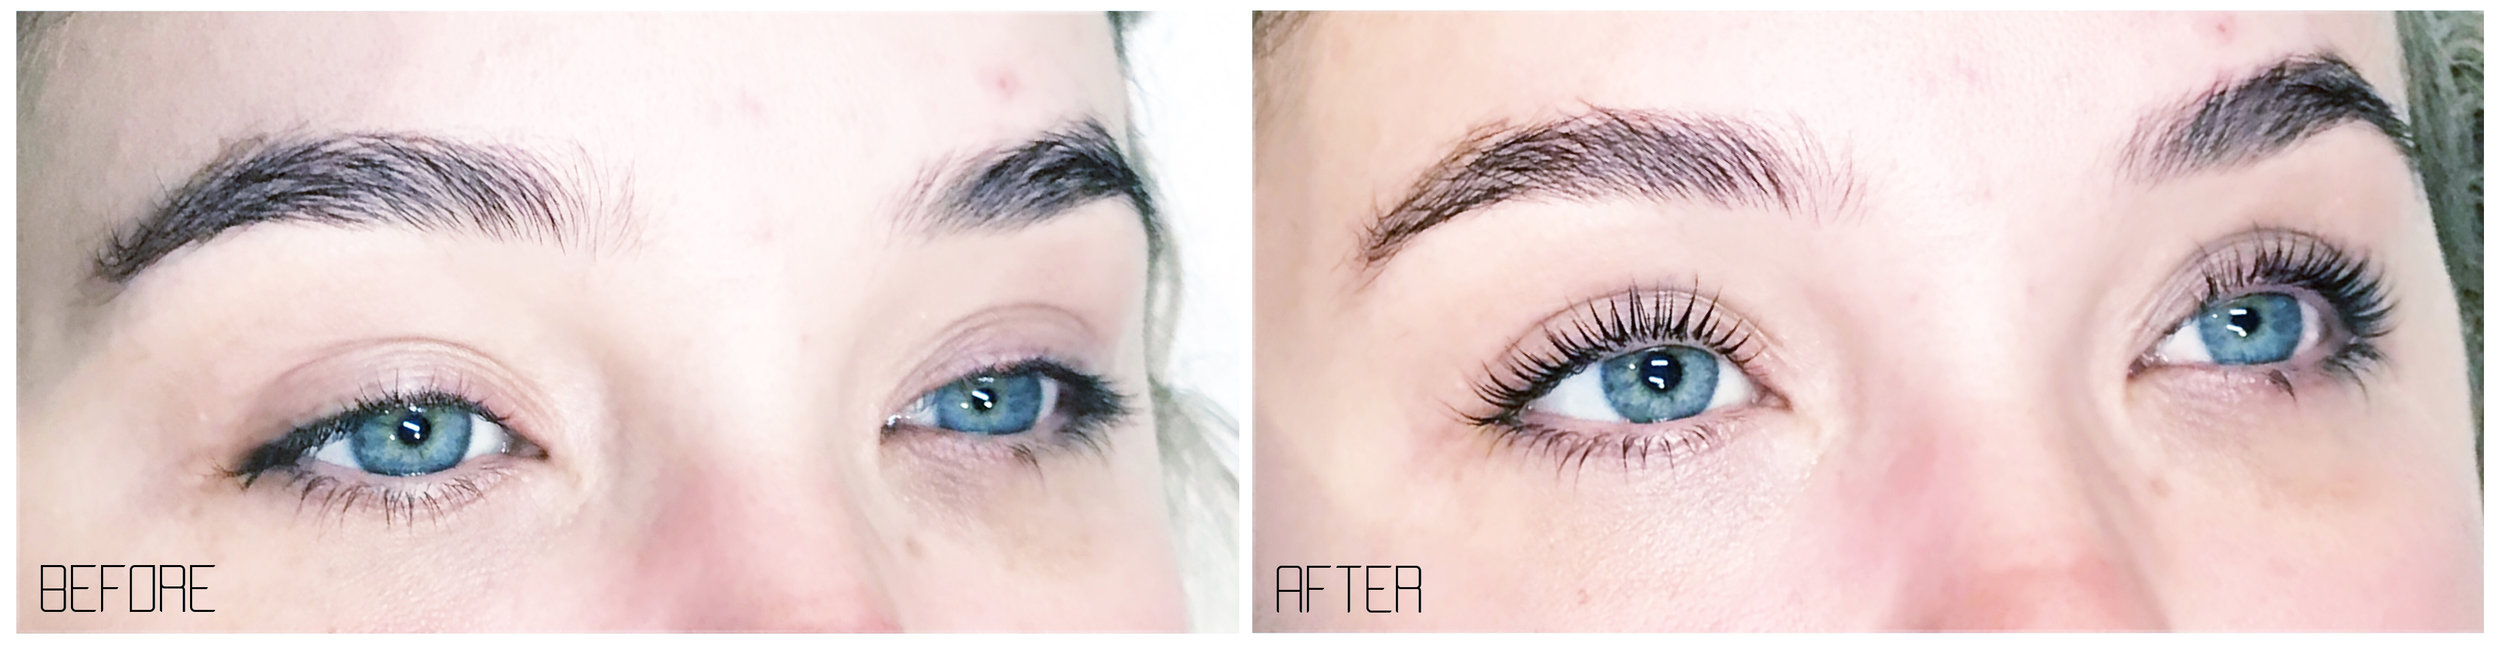 lash lift before and after side by side.jpg